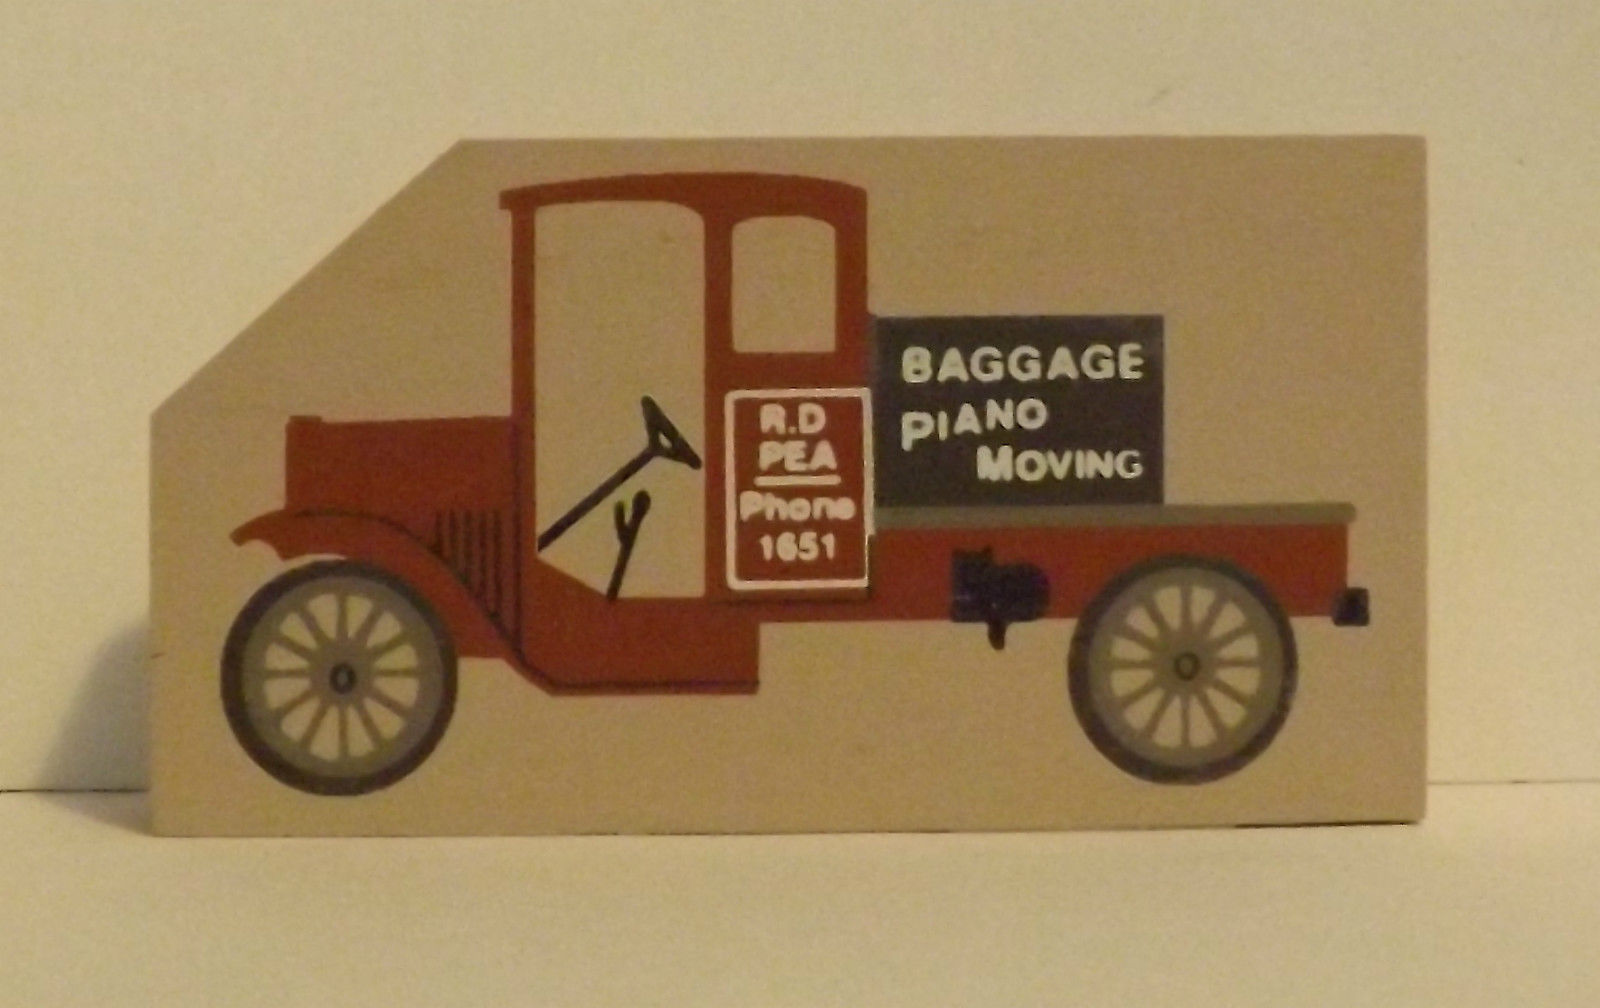 Cats Meow Accessory Moving Truck 1994